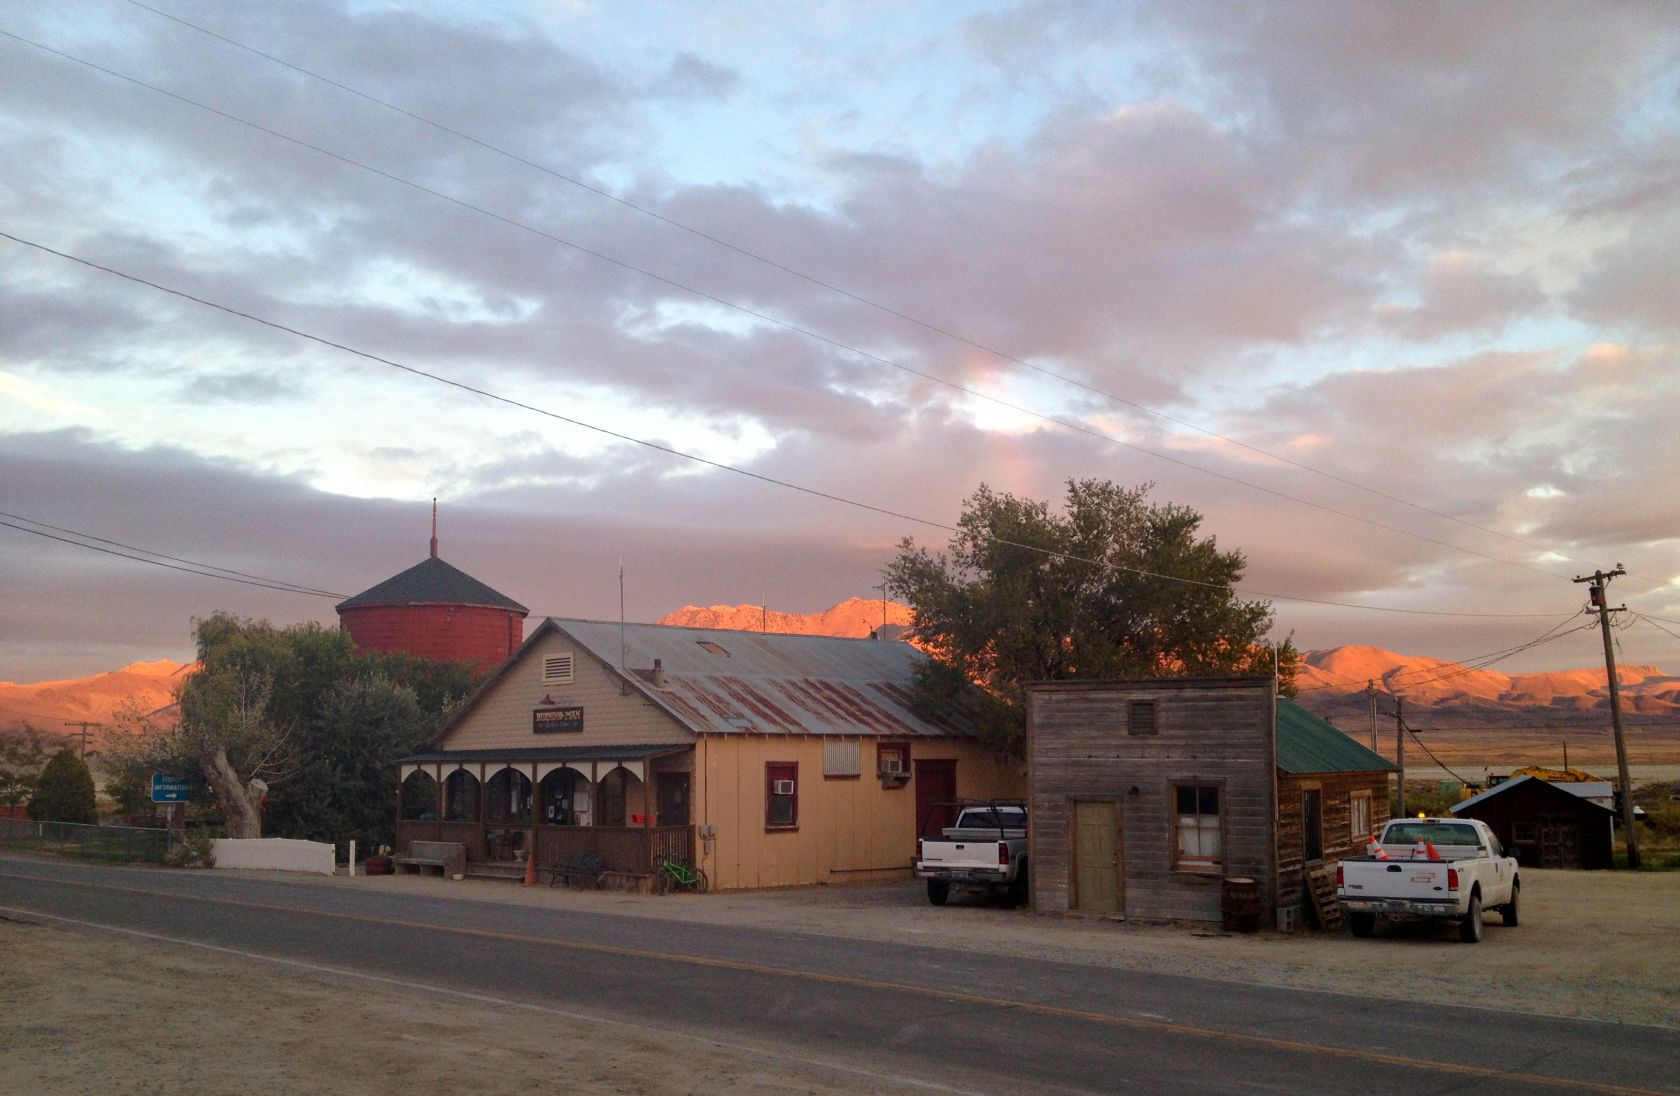 Sun sets across from Burning Man's main office in this old cowboy town, with the auxiliary office to the right that's actually an old jailhouse. Come in to get a charged battery for your crew radio; stay for the fantasies about what kind of folks had been incarcerated in there before we were even alive.